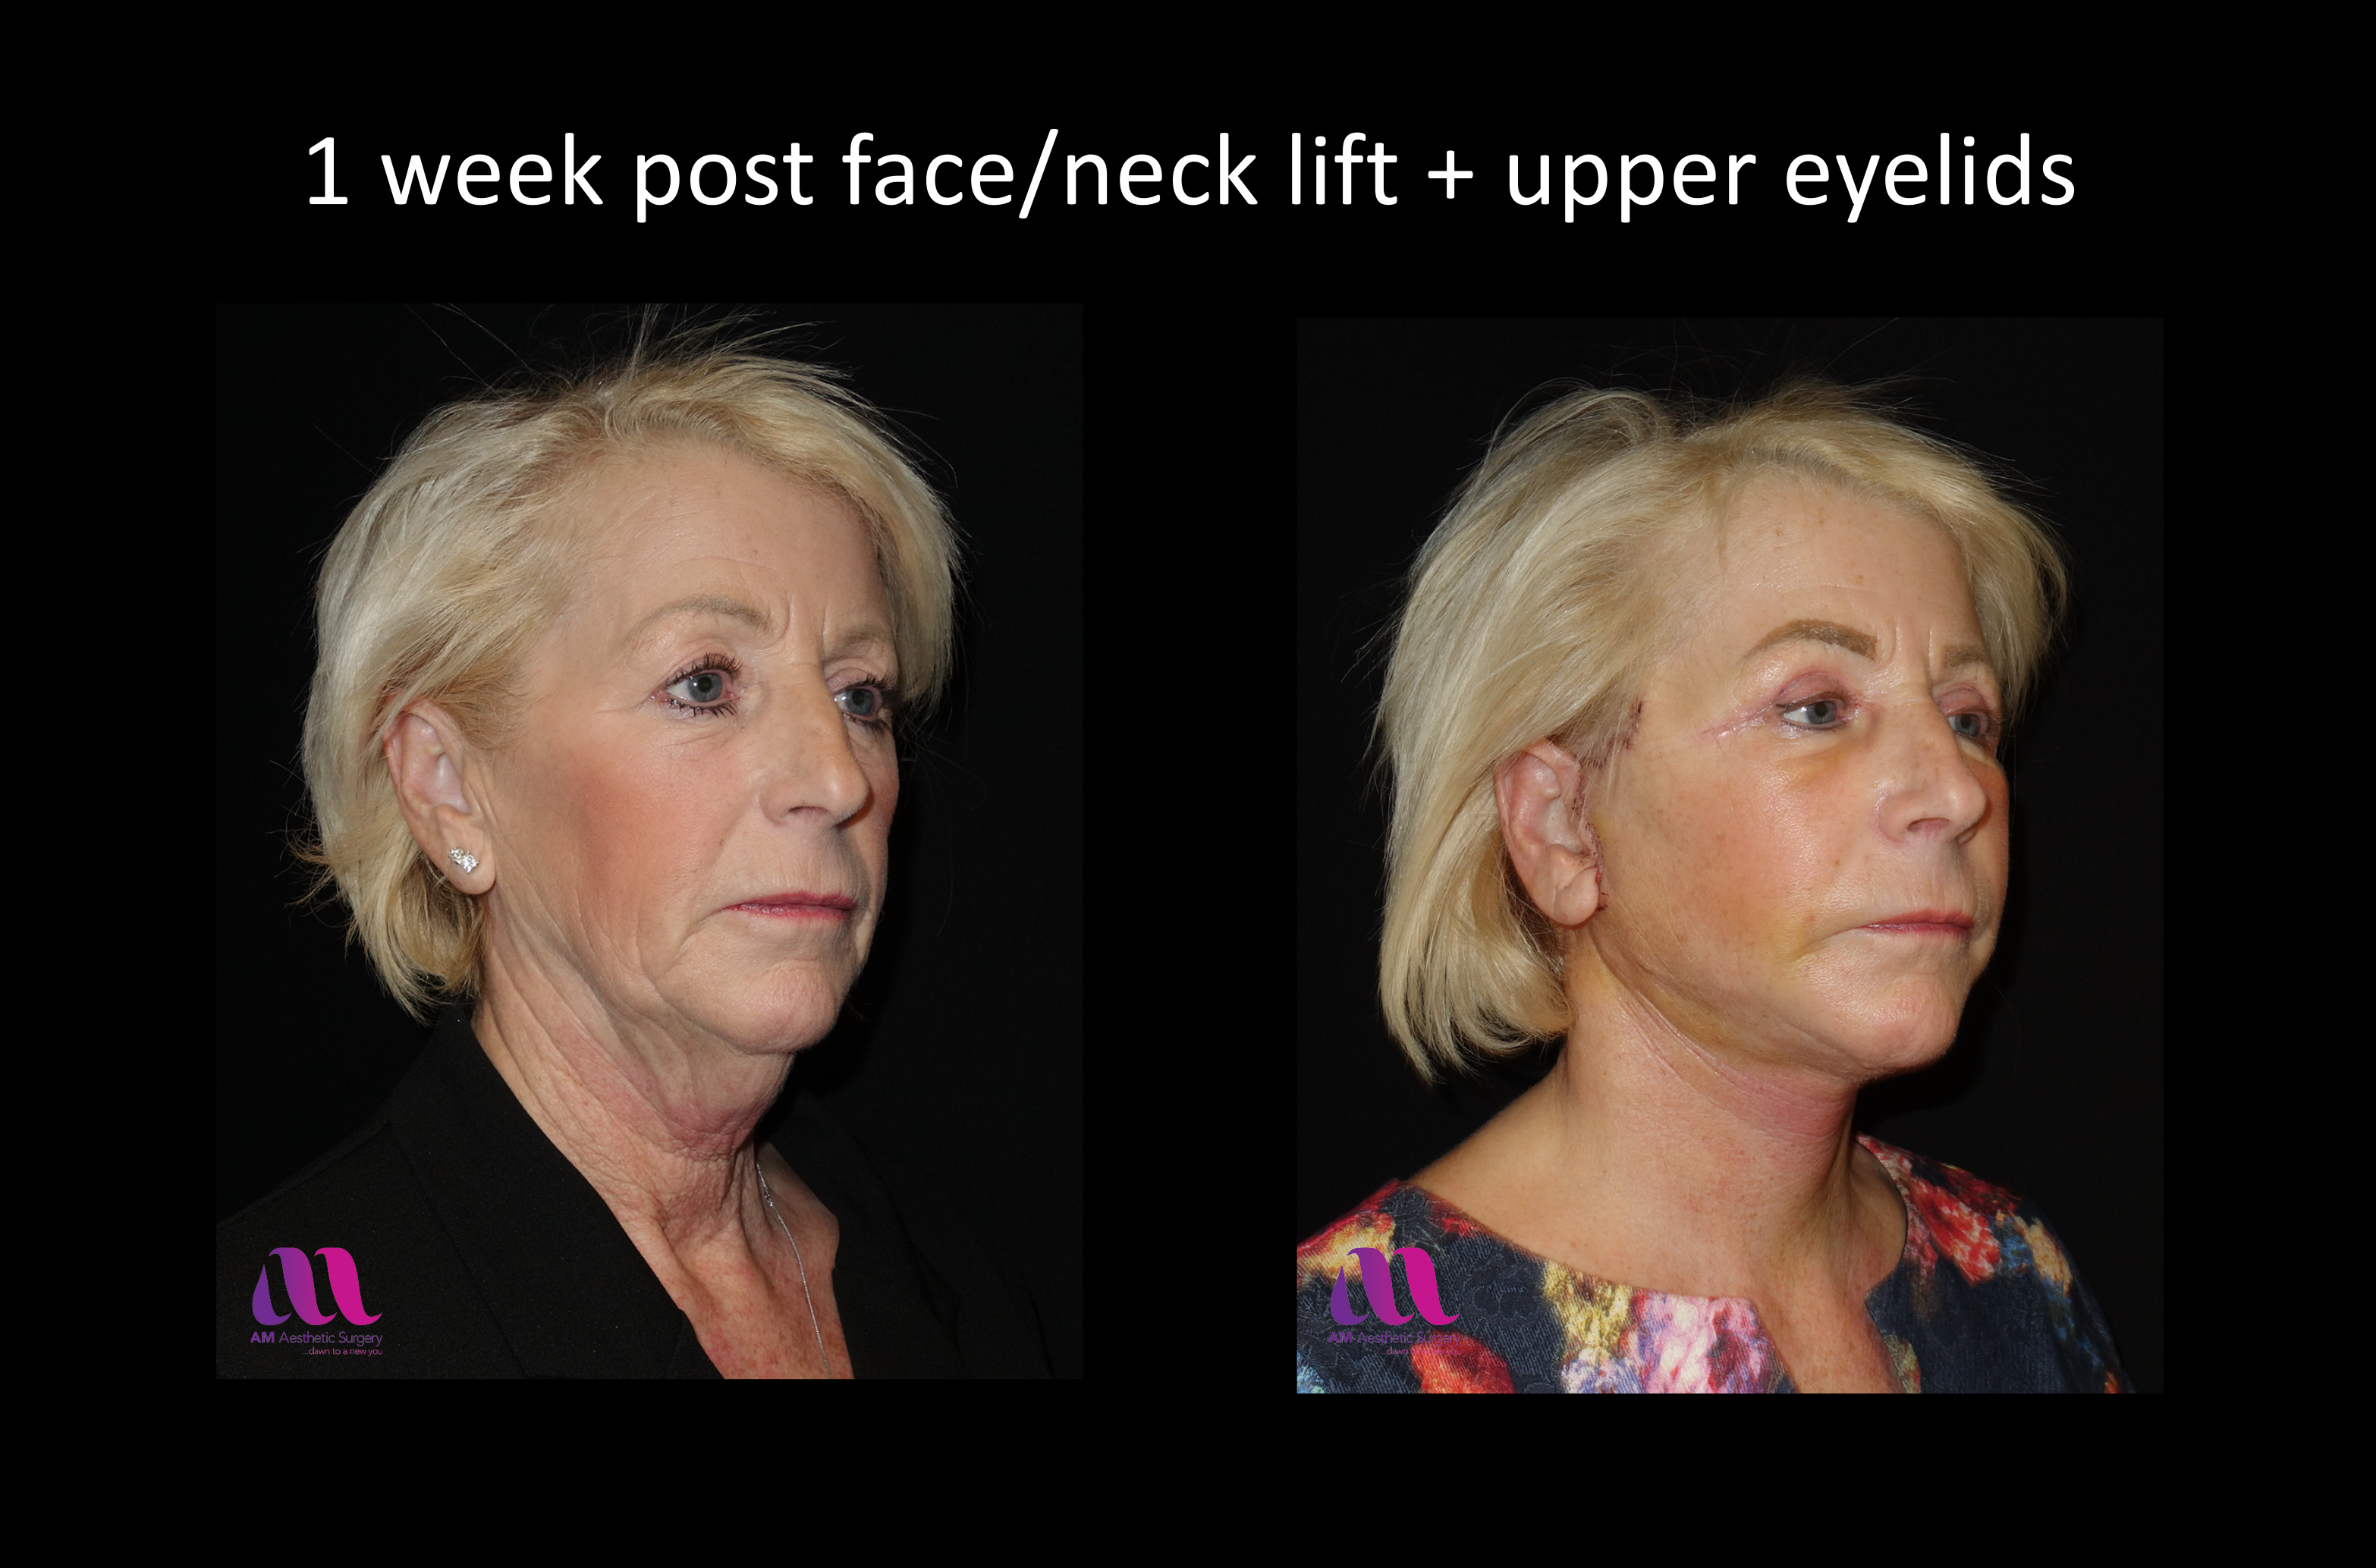 Face Lift +Upp Eyelids14c